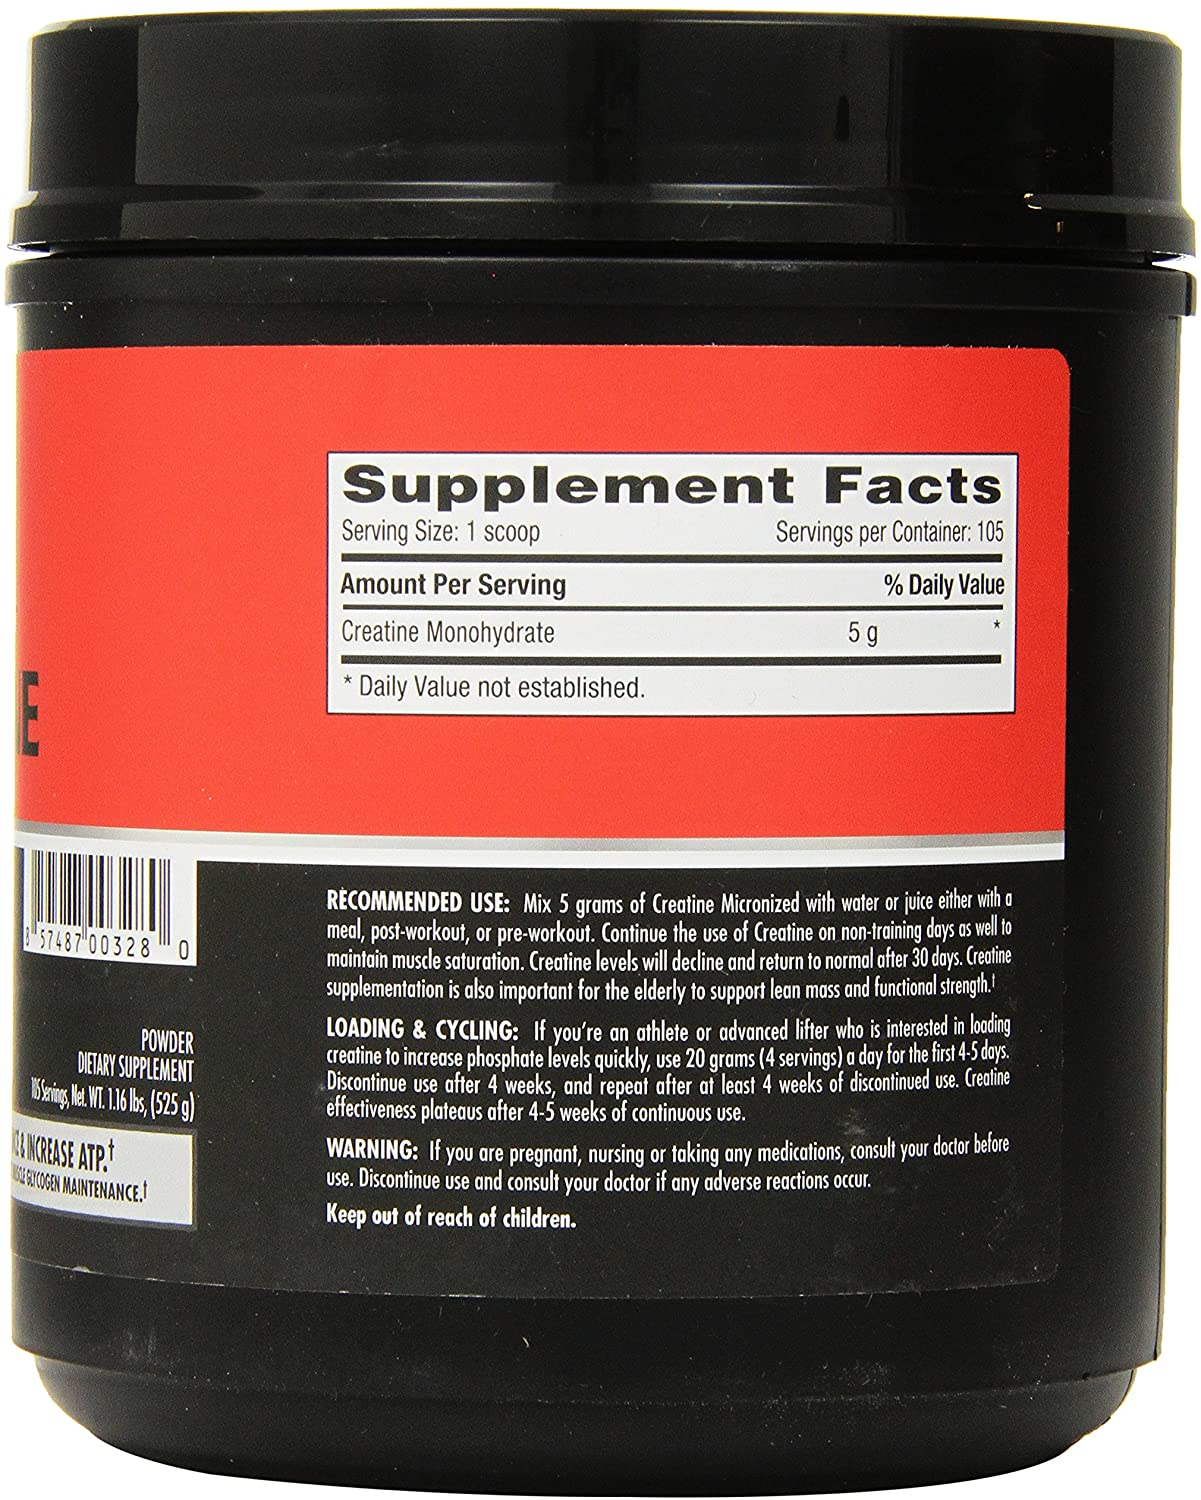 betancourt-creatine-gia-suc-manh-co-bap-nutrition-facts-label-gymstore-2